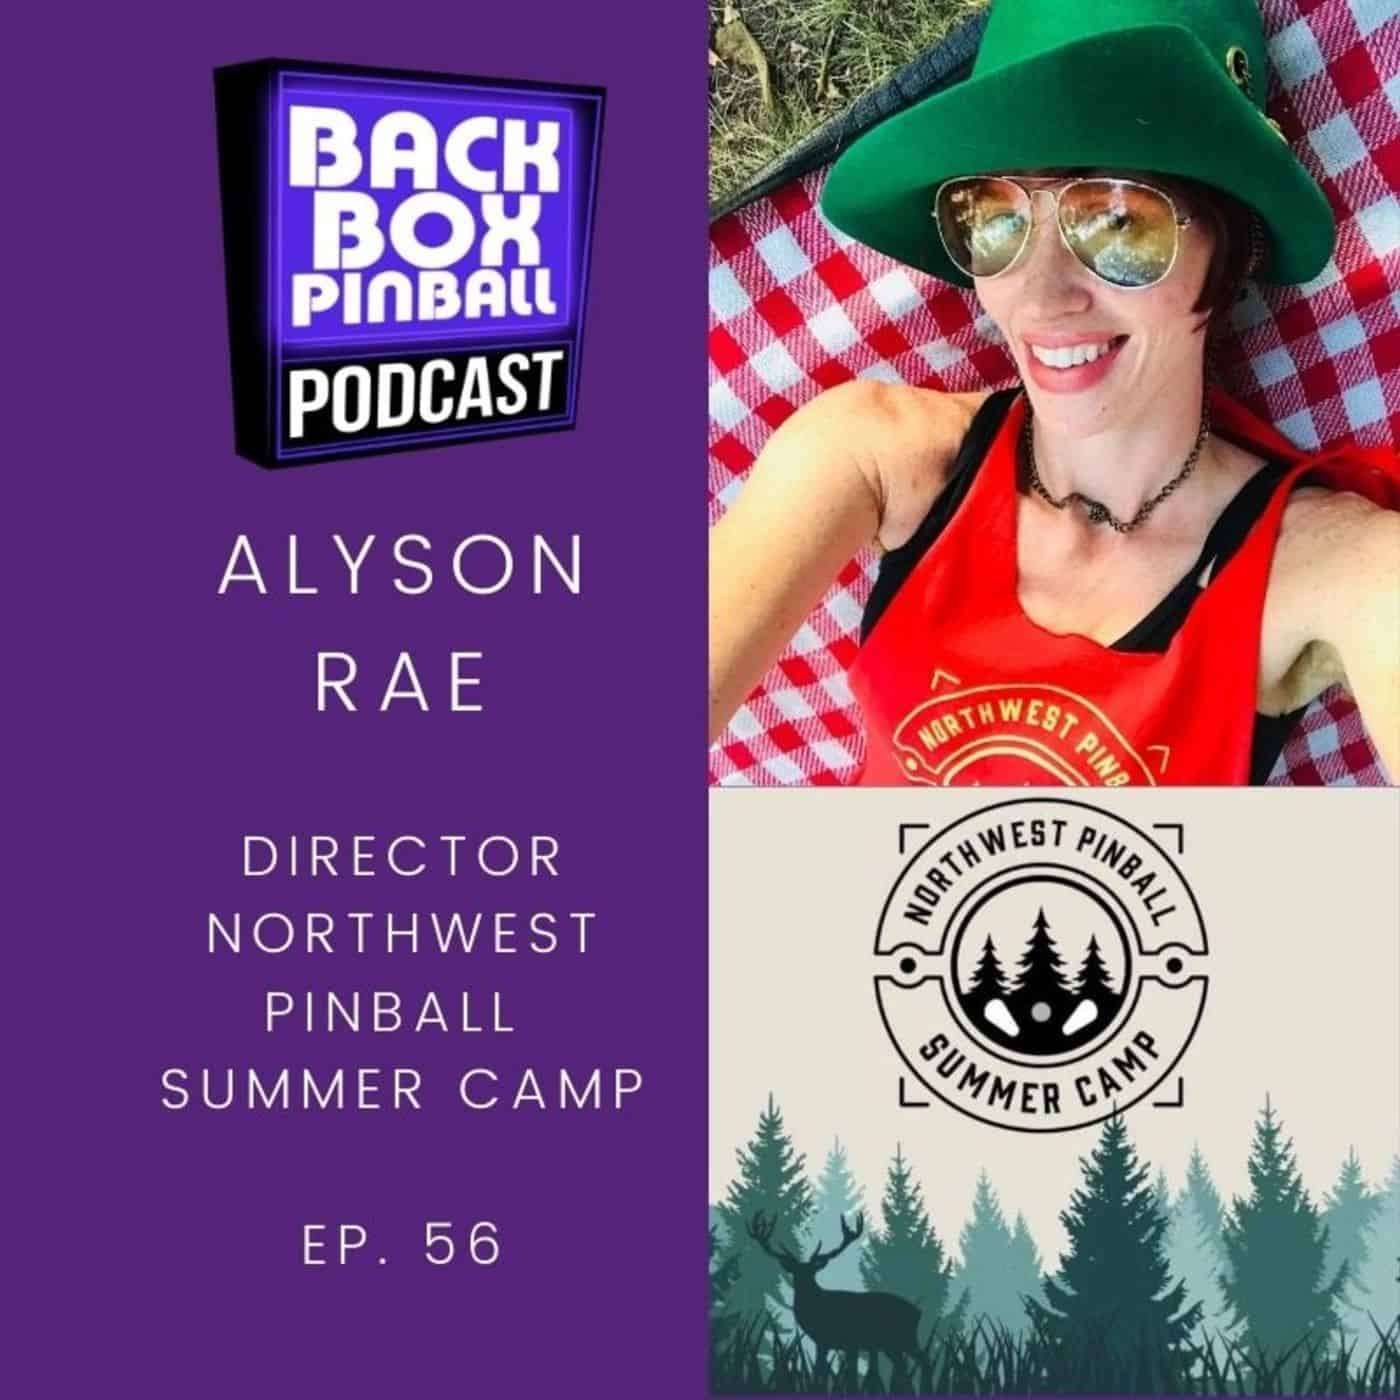 Backbox Pinball Podcast: Alyson Rae